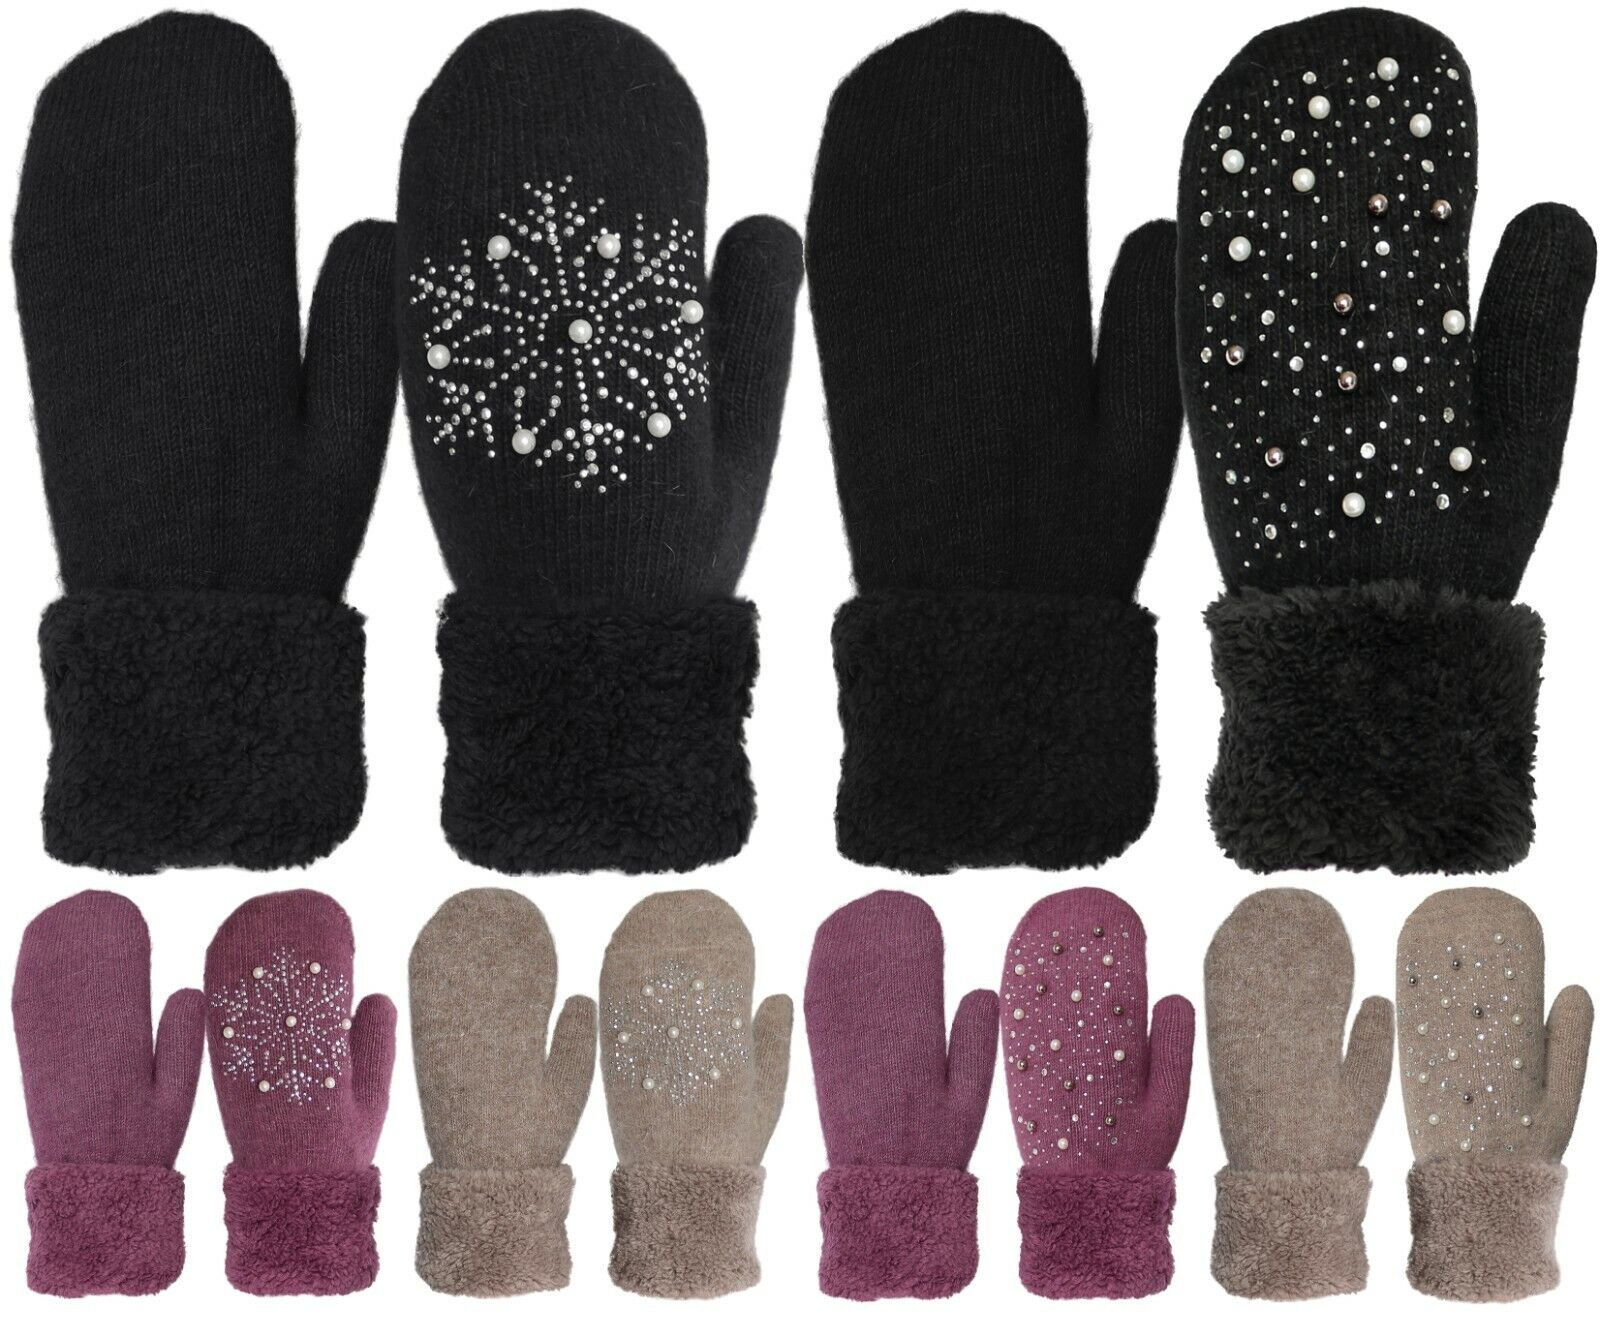 Wool Blend Plush Lined Cuffed Winter Knit Mittens Clothing, Shoes & Accessories